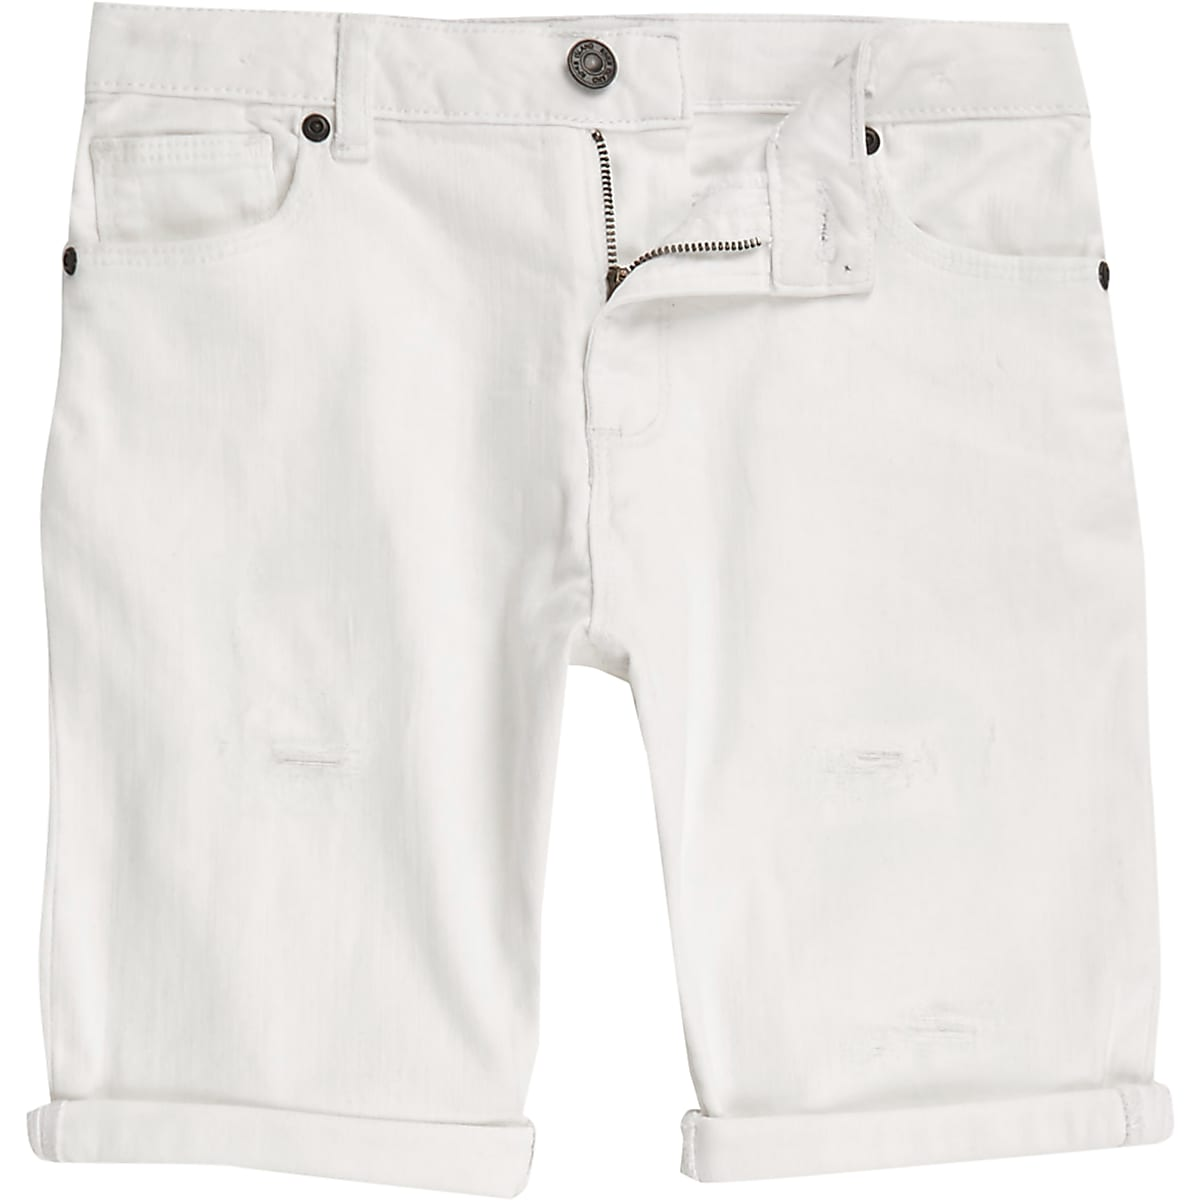 77766fb53a Boys white ripped denim shorts Boys white ripped denim shorts ...